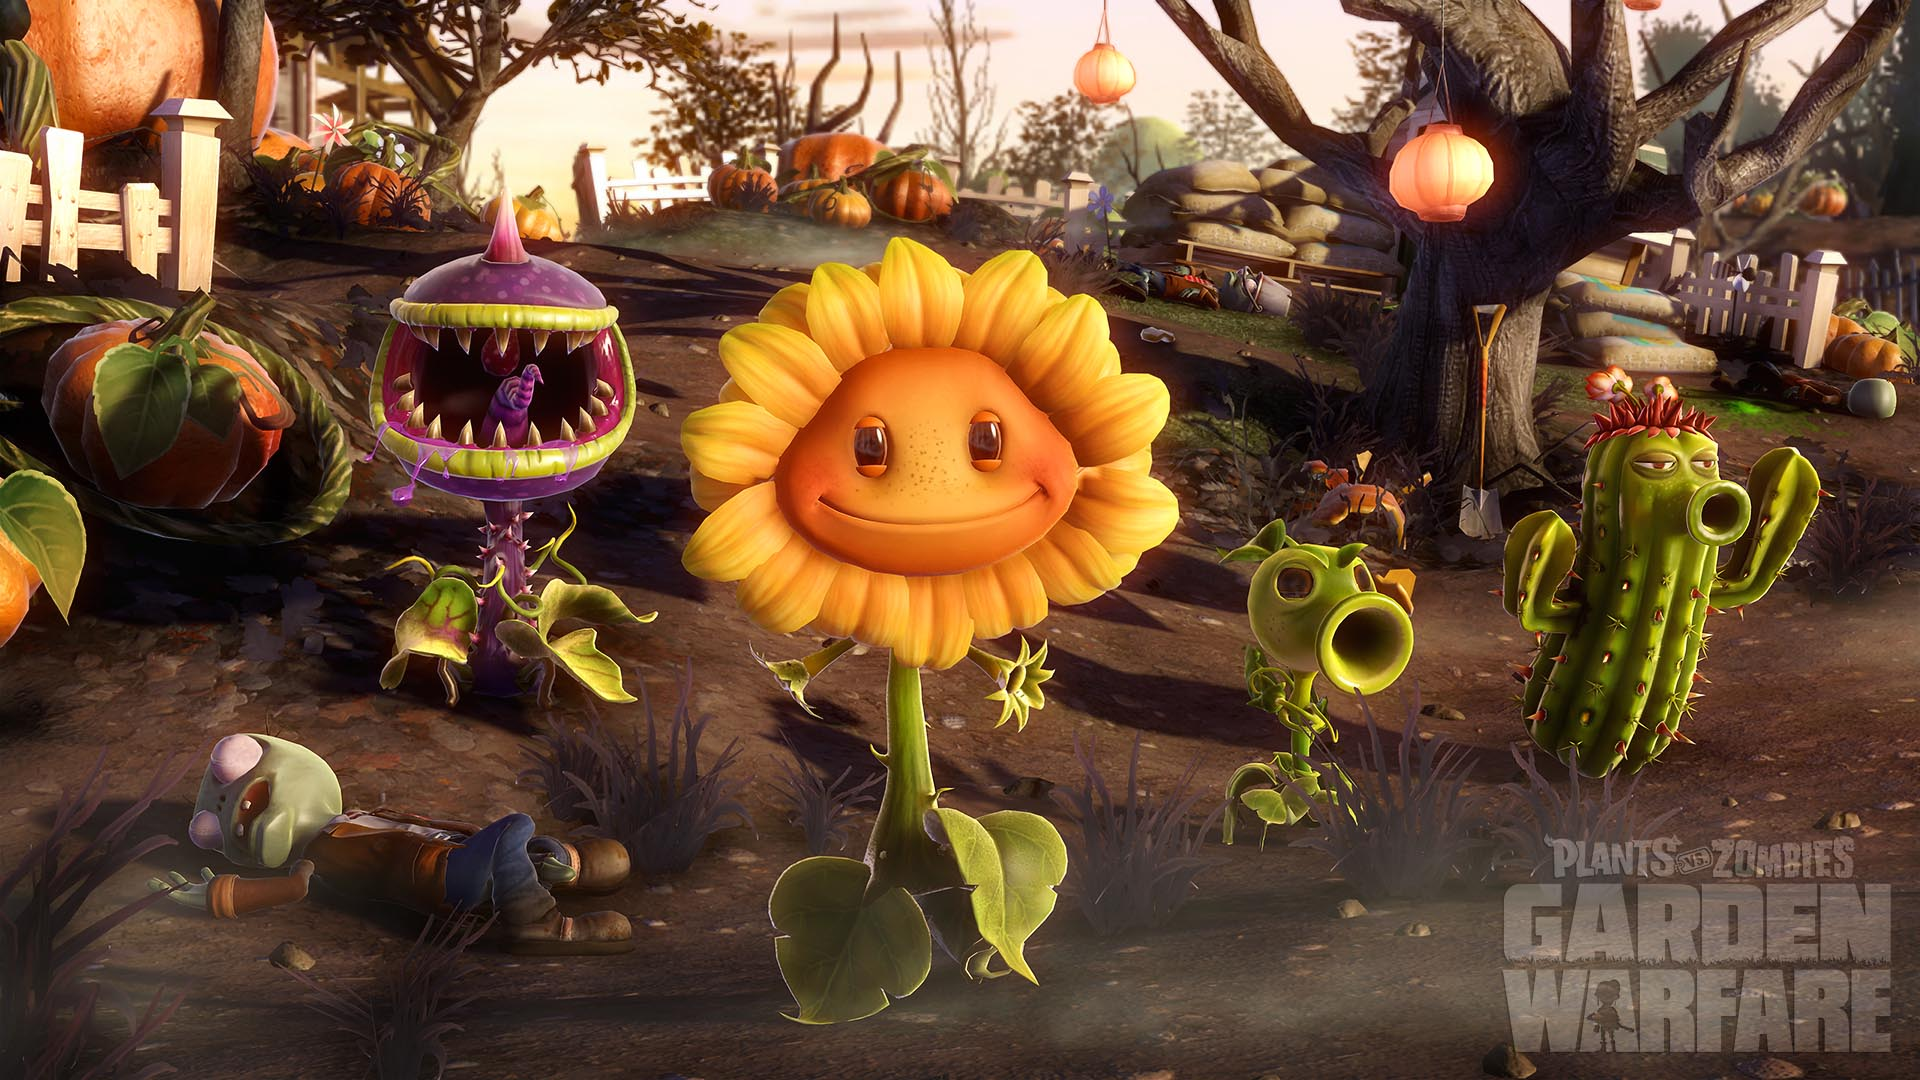 Plants vs zombies garden warfare game for Plante vs zombie garden warfare 2